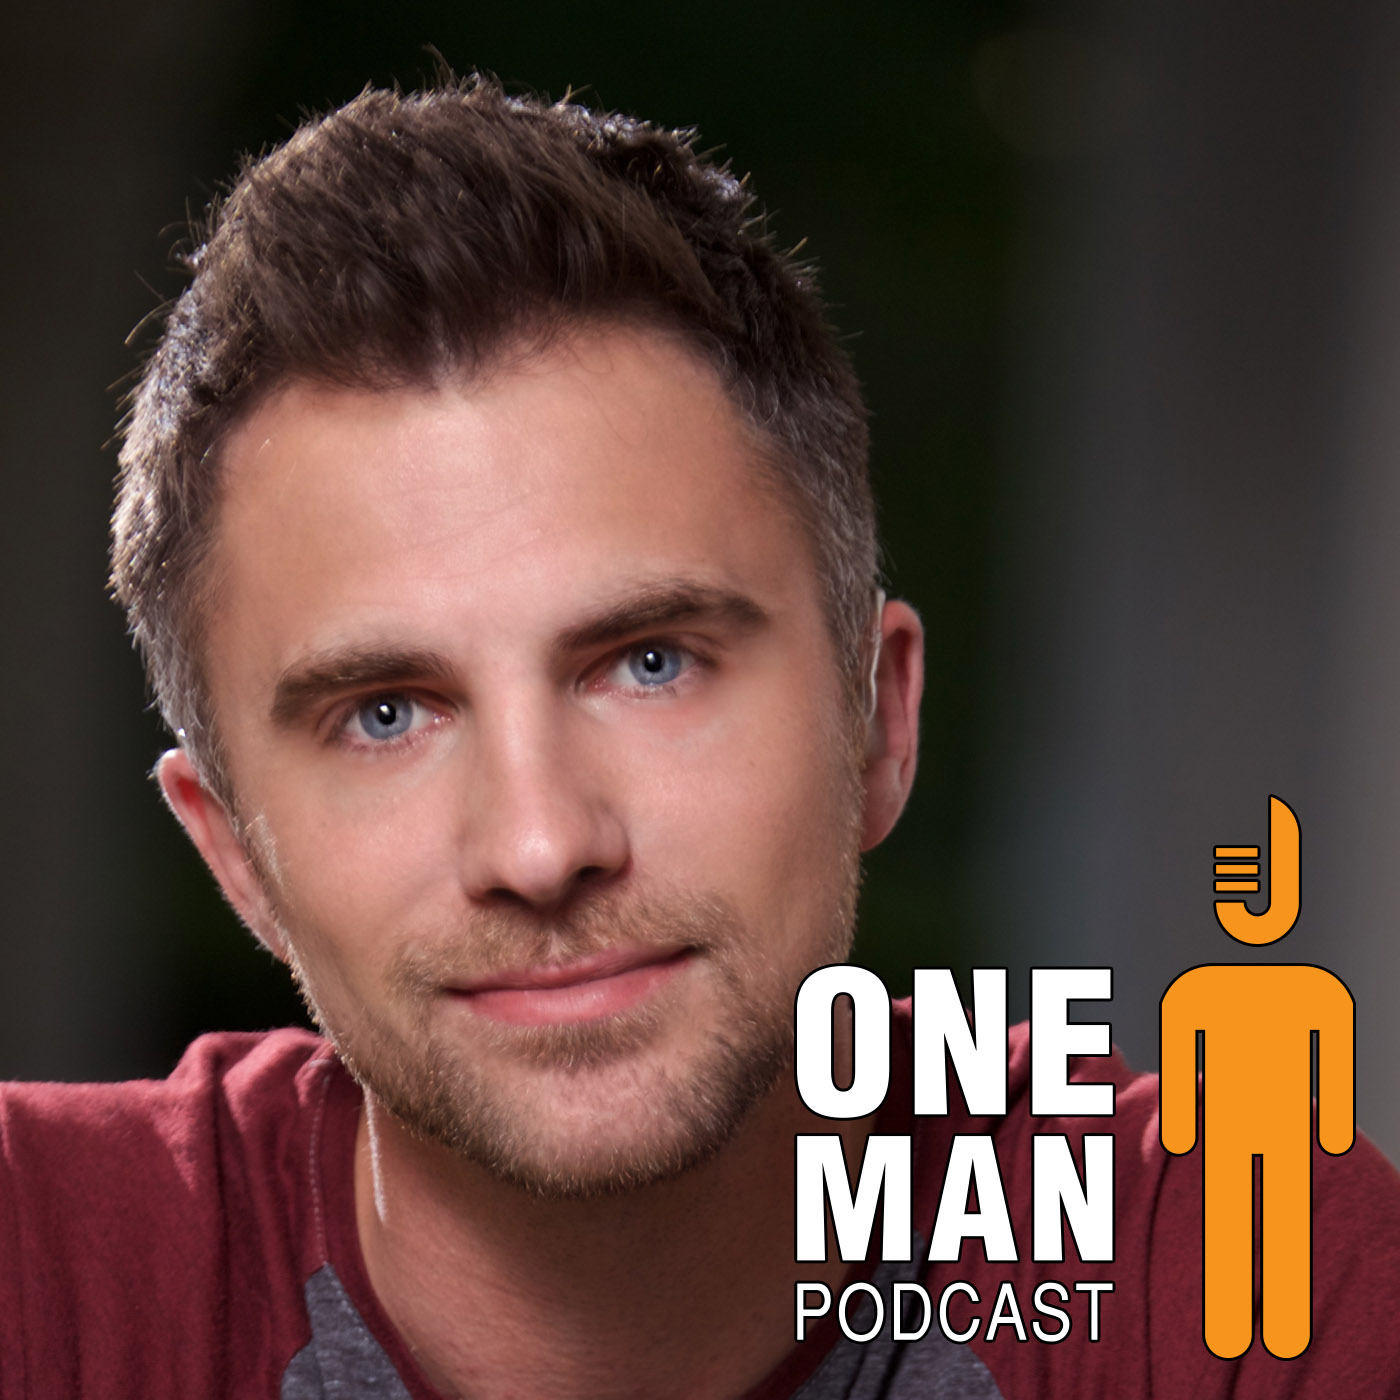 One Man Podcast - DJ Demers